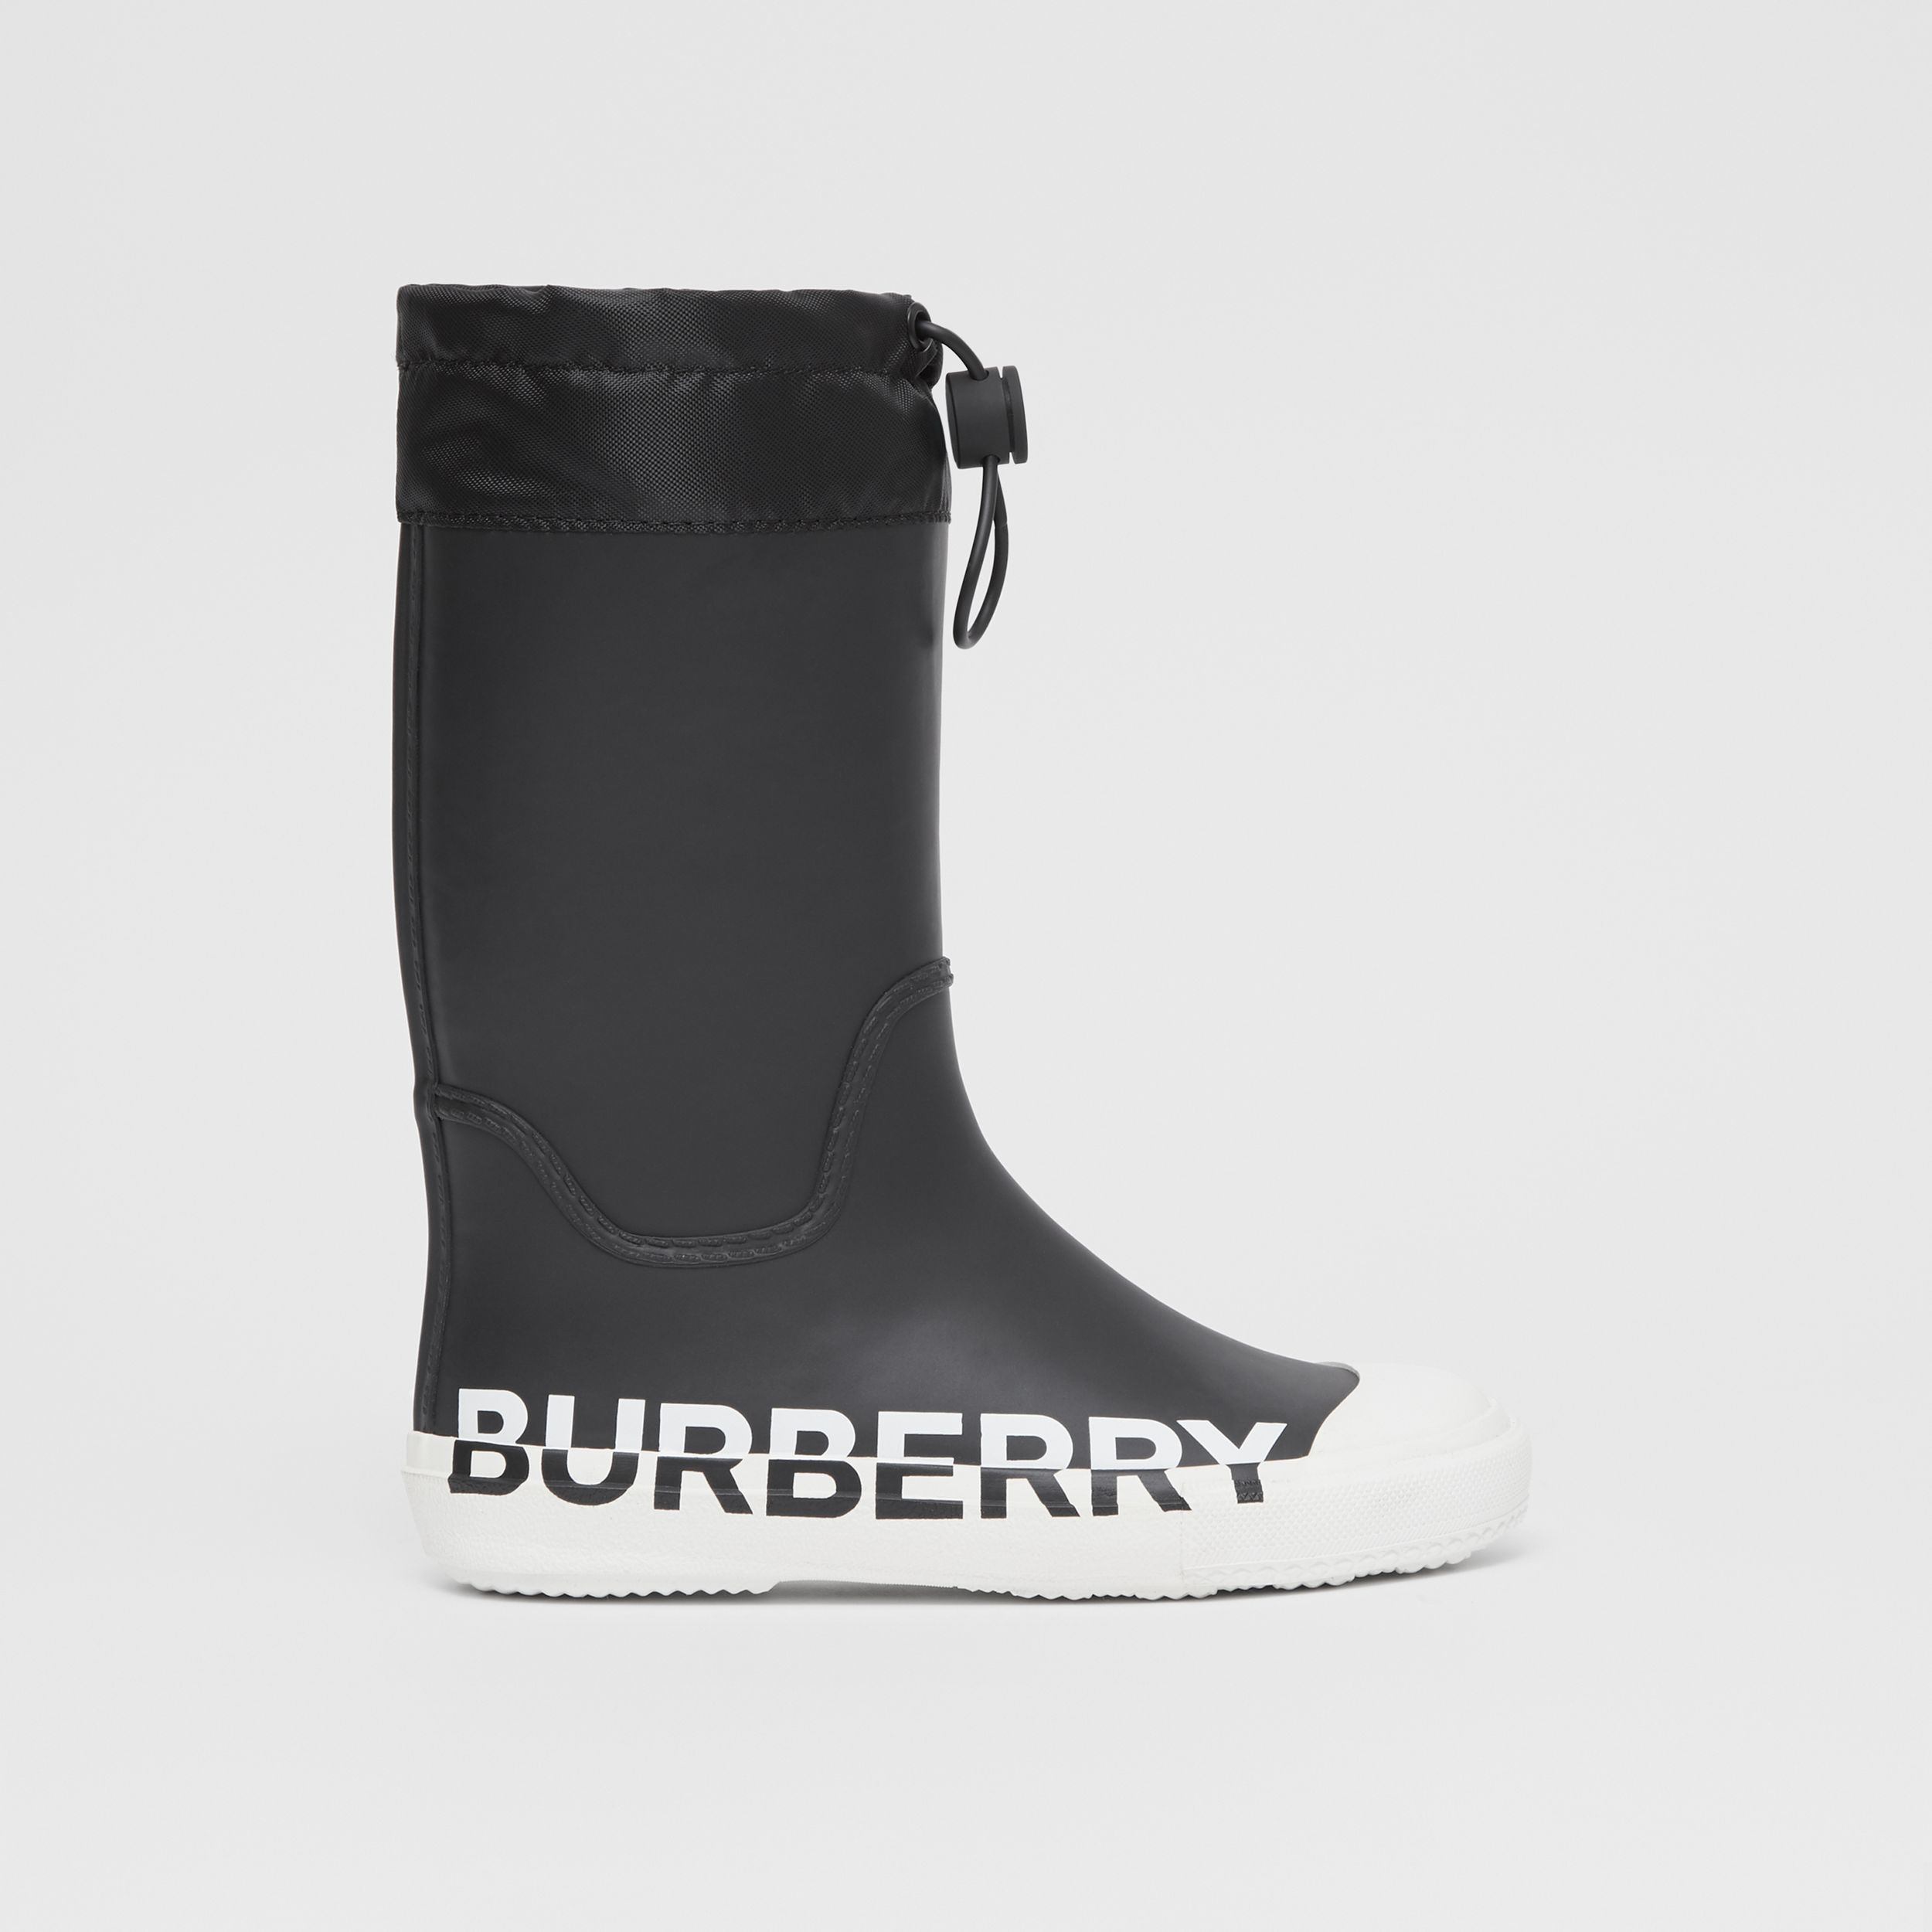 Logo Print Two-tone Rubber Rain Boots in Black - Children | Burberry - 4